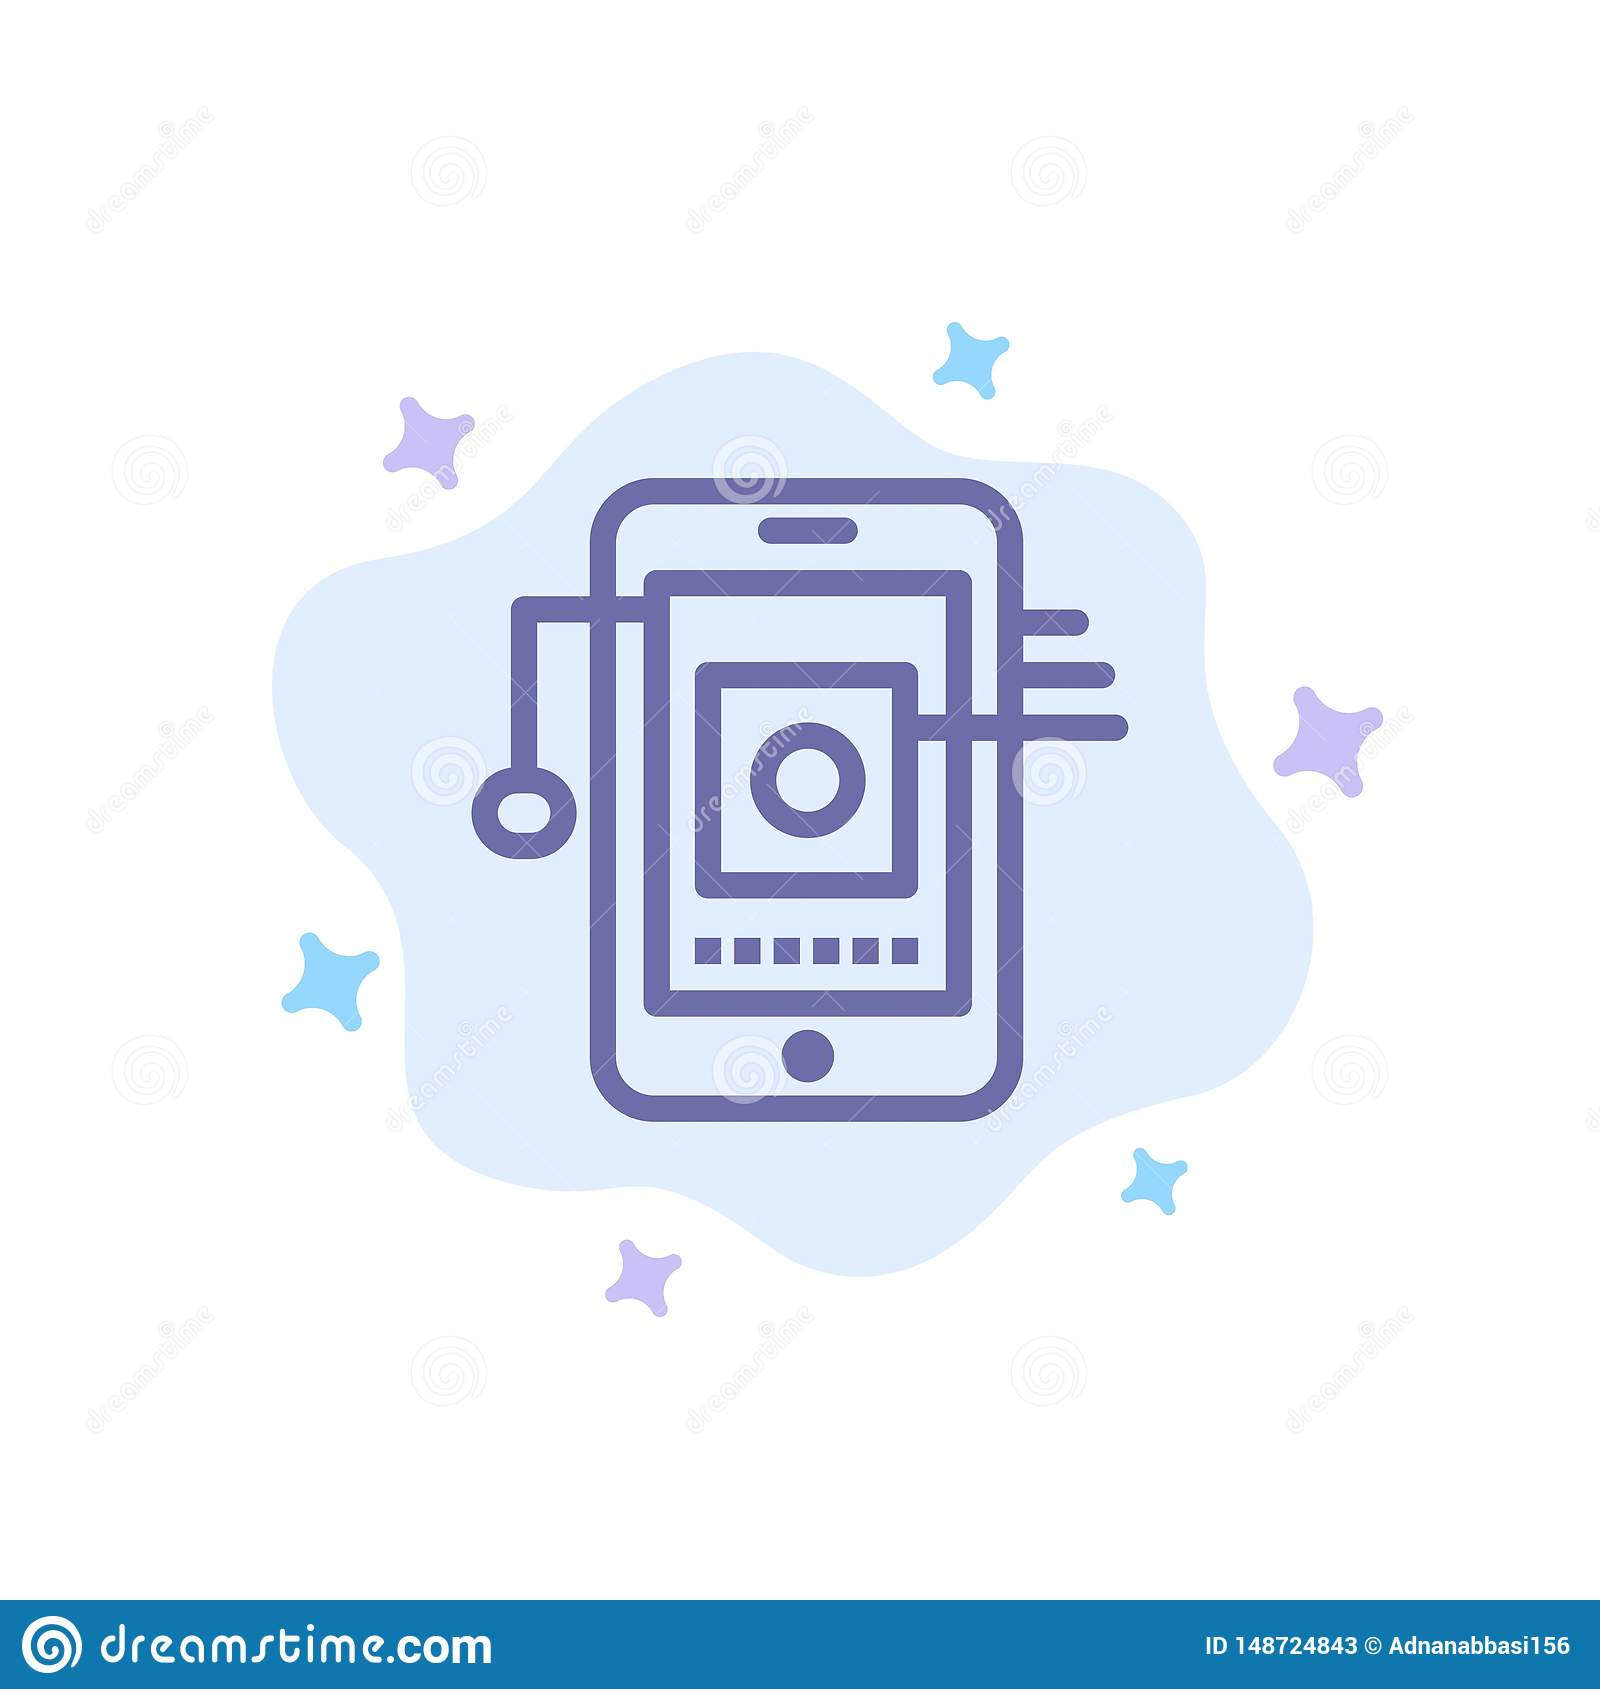 Mobile, Cell, Hardware, Network Blue Icon on Abstract Cloud Background